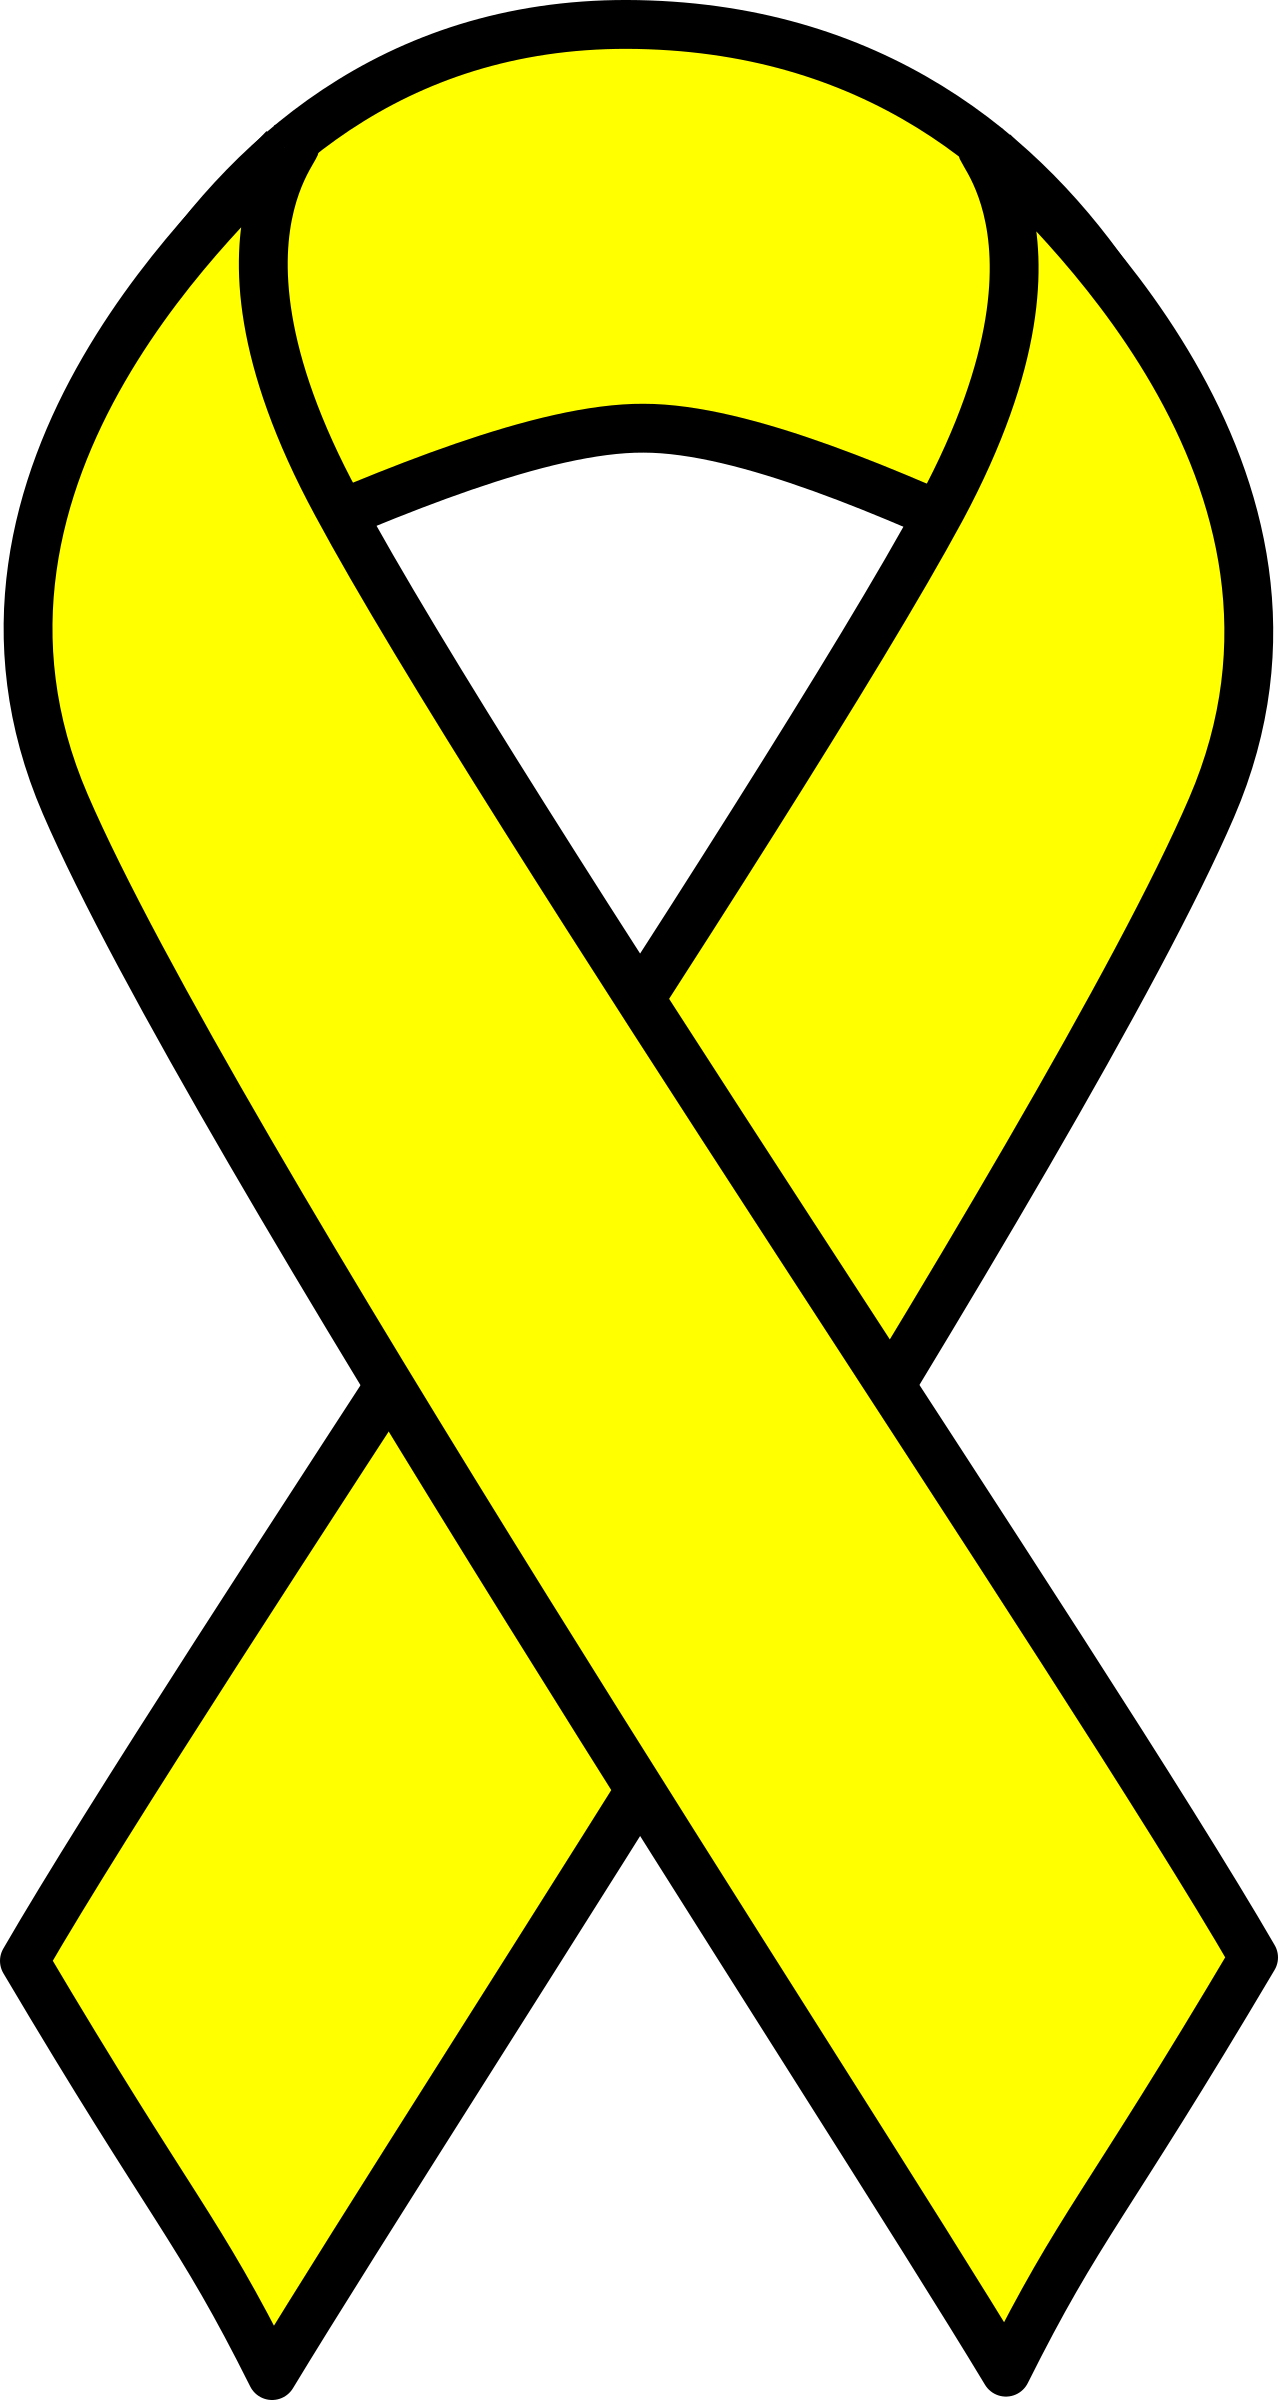 Cancer Ribbons Clipart.